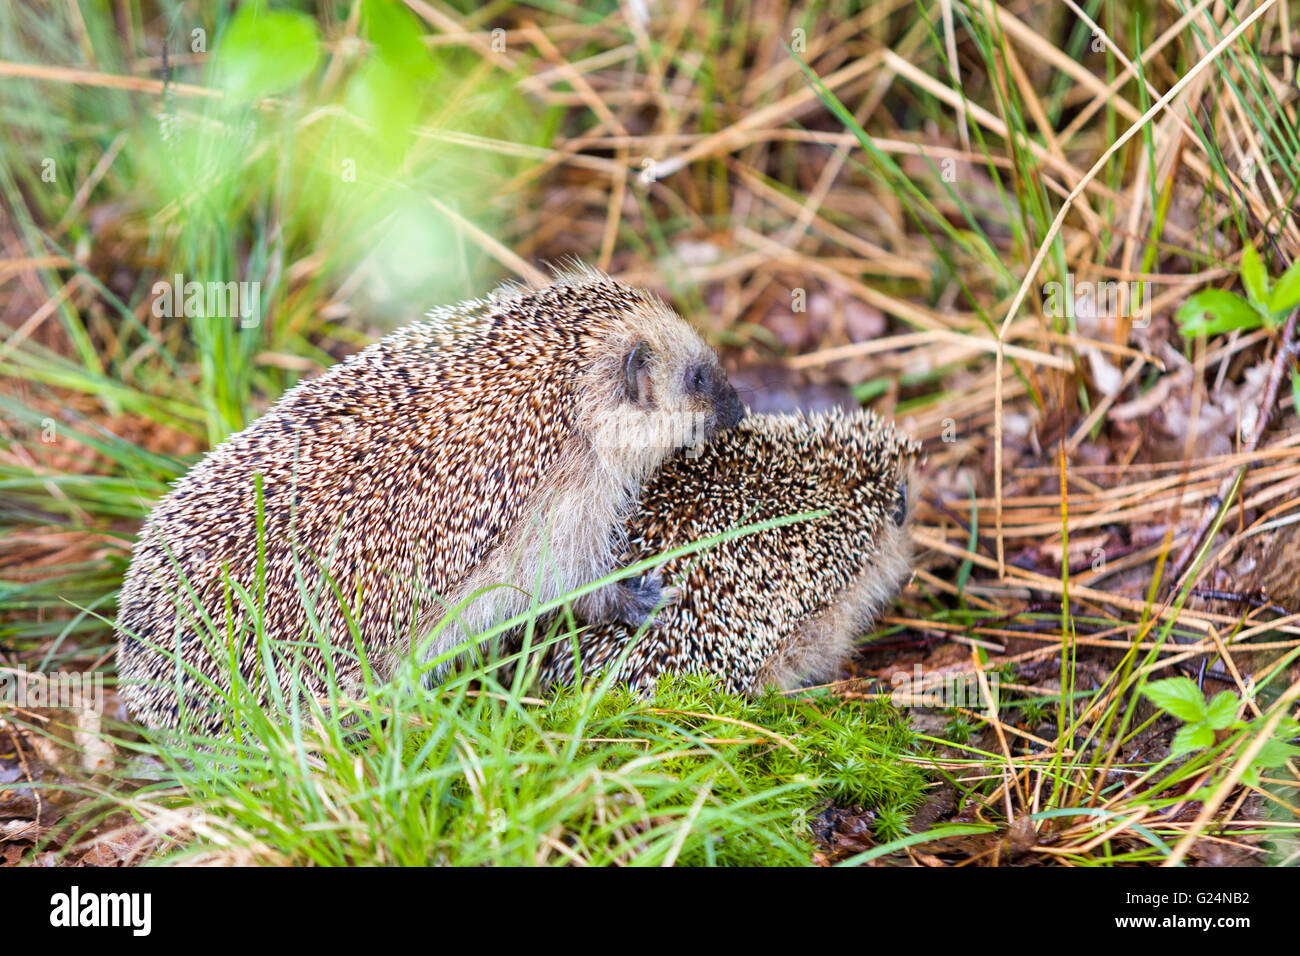 European hedgehogs (Erinaceus europaeus) mating  Model Release: No.  Property Release: No. - Stock Image